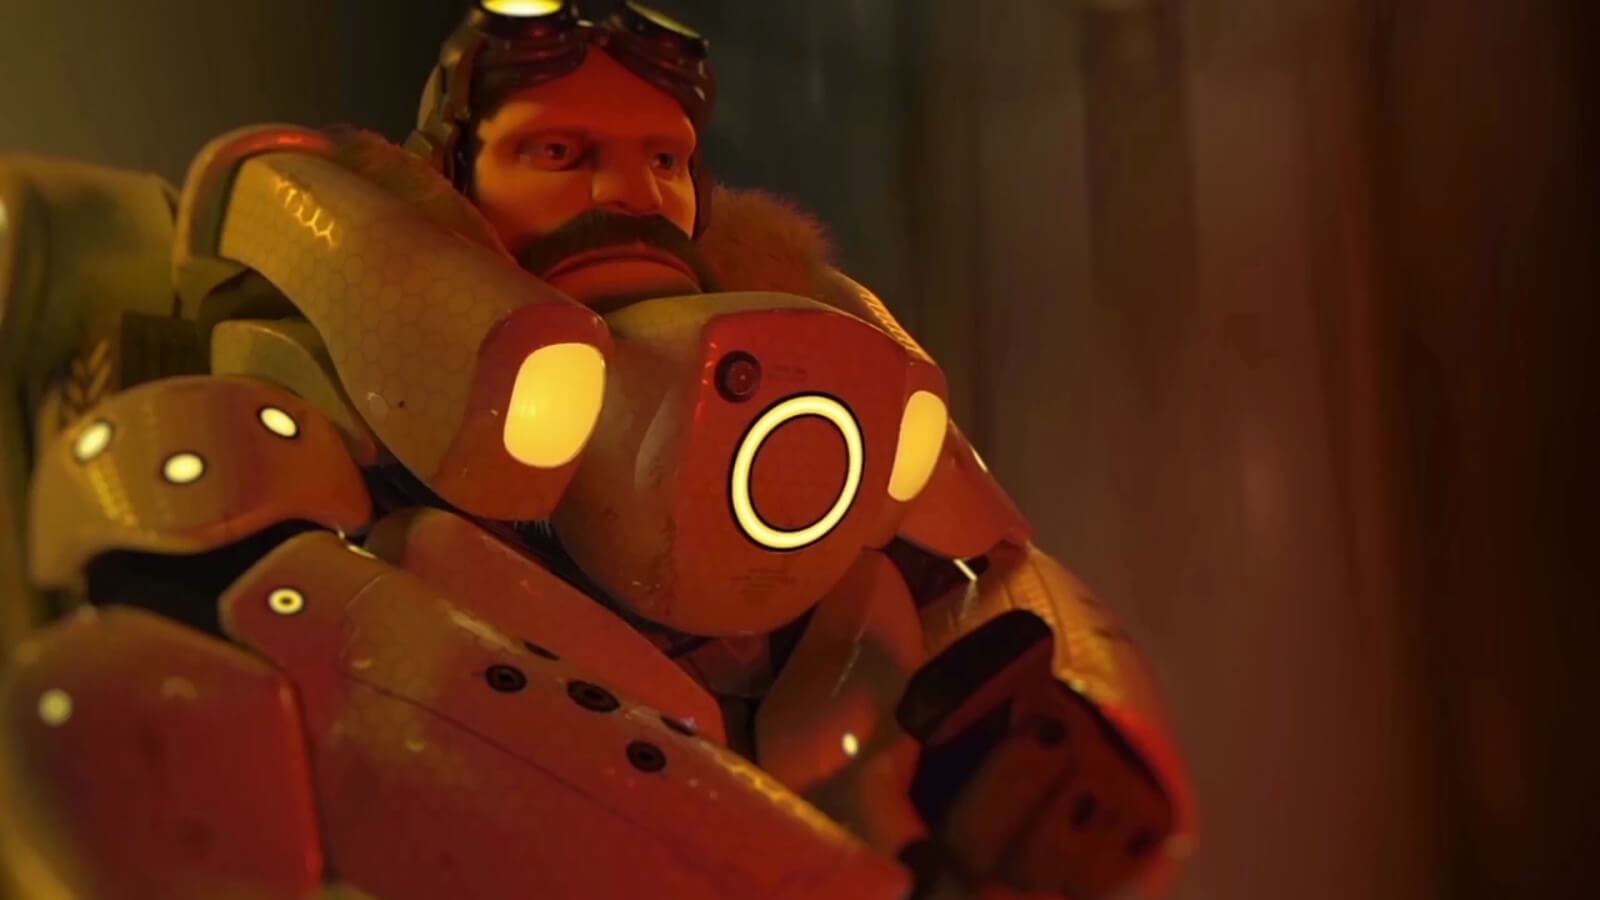 A bearded man wearing goggles and futuristic armor accented with orange lights looks ahead